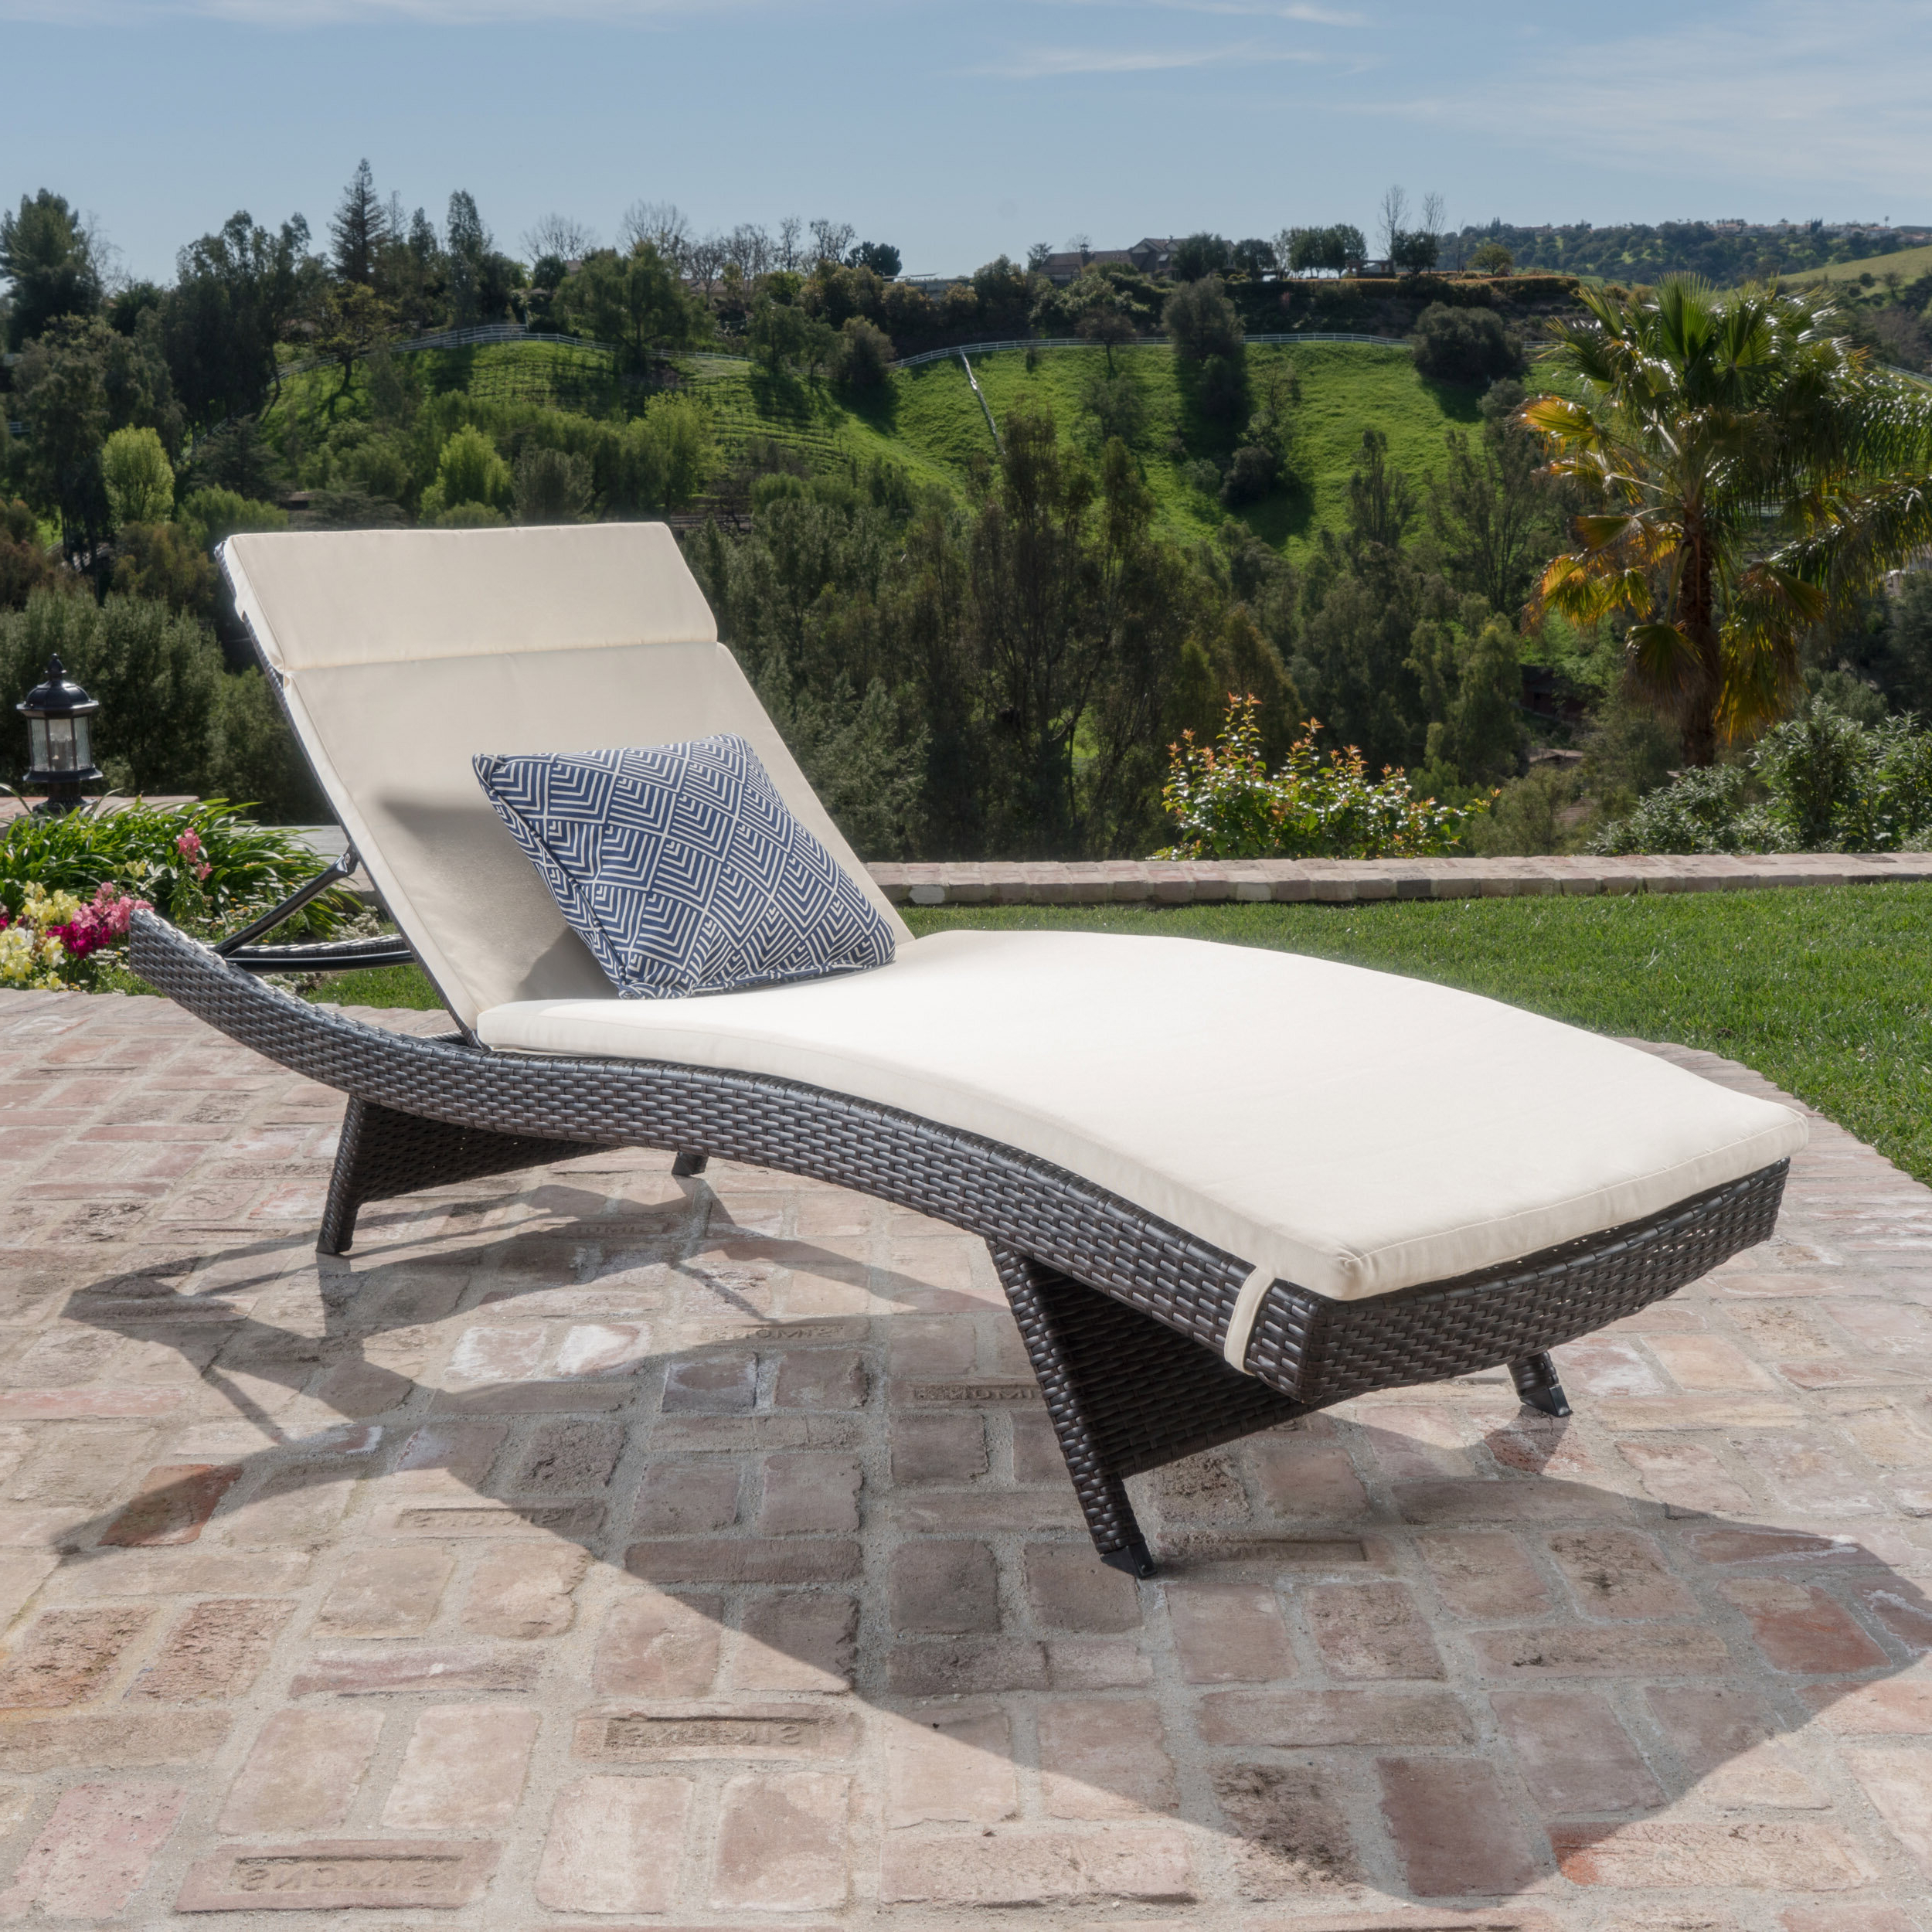 Ullman Adjustable Chaise Lounge With Beige Cushions Regarding Favorite Outdoor Wicker Adjustable Chaise Lounges With Cushions (View 23 of 25)